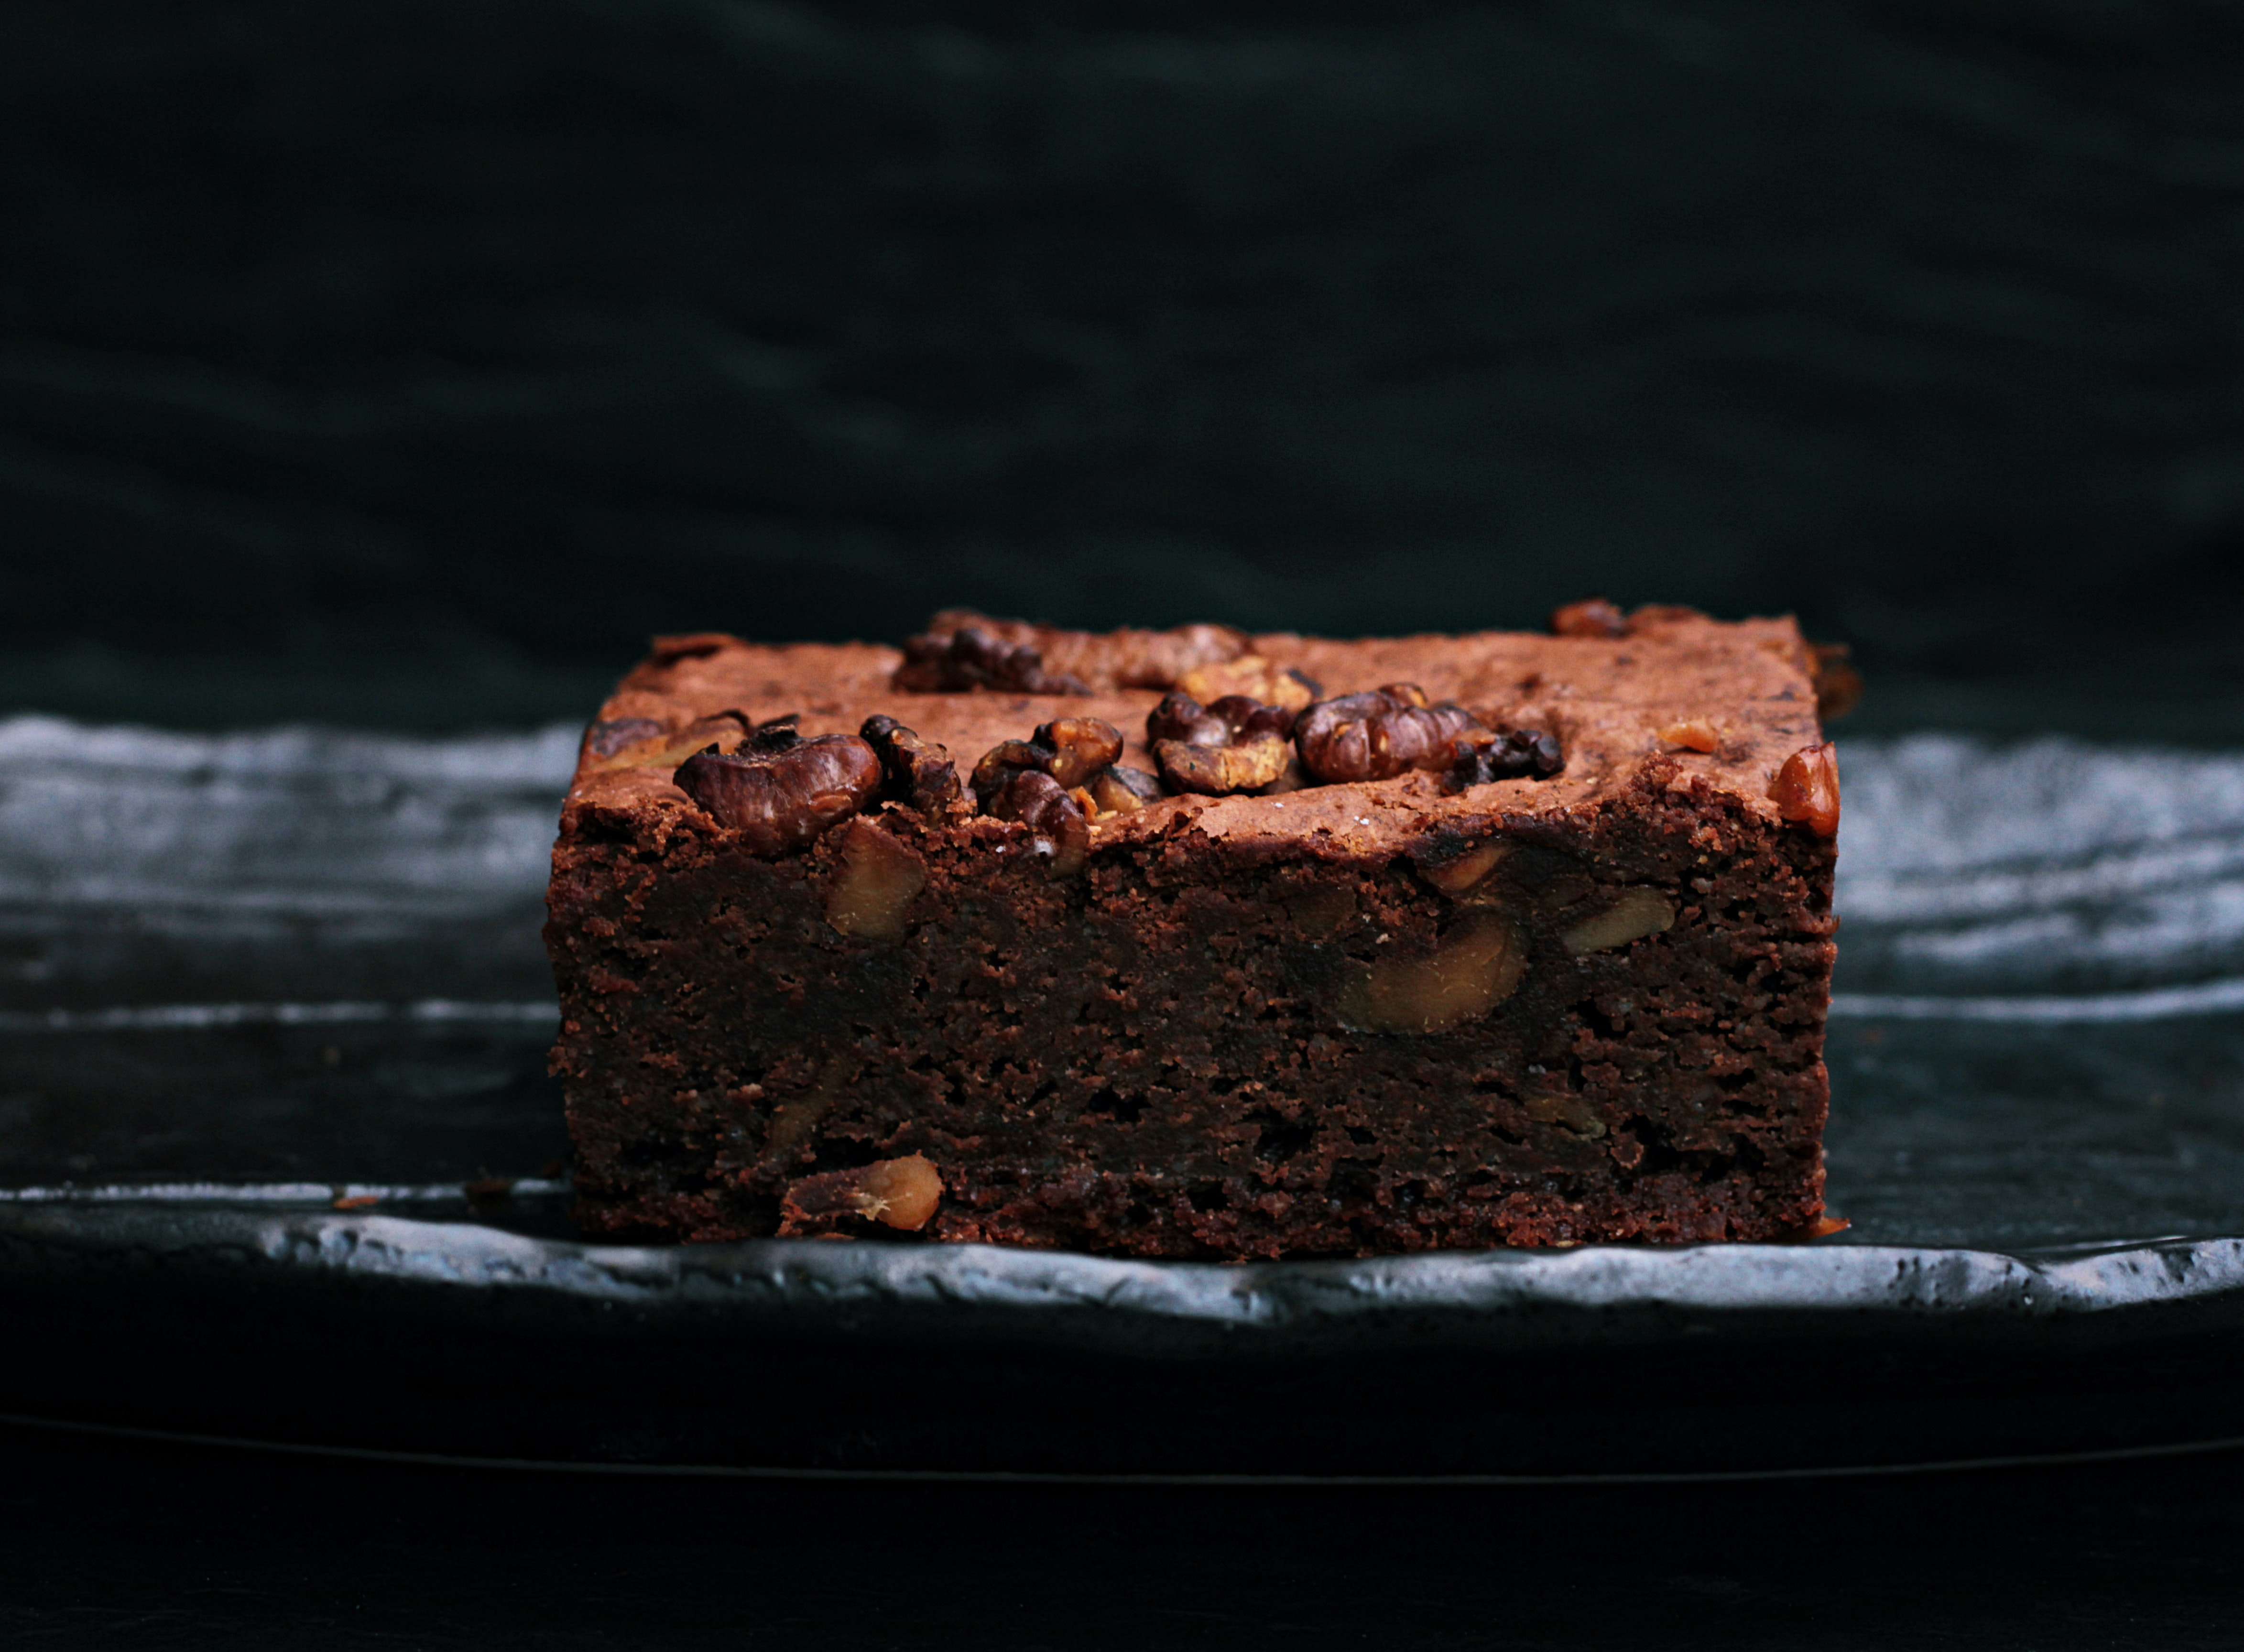 Homemade chocolate, gooey brownie with nuts